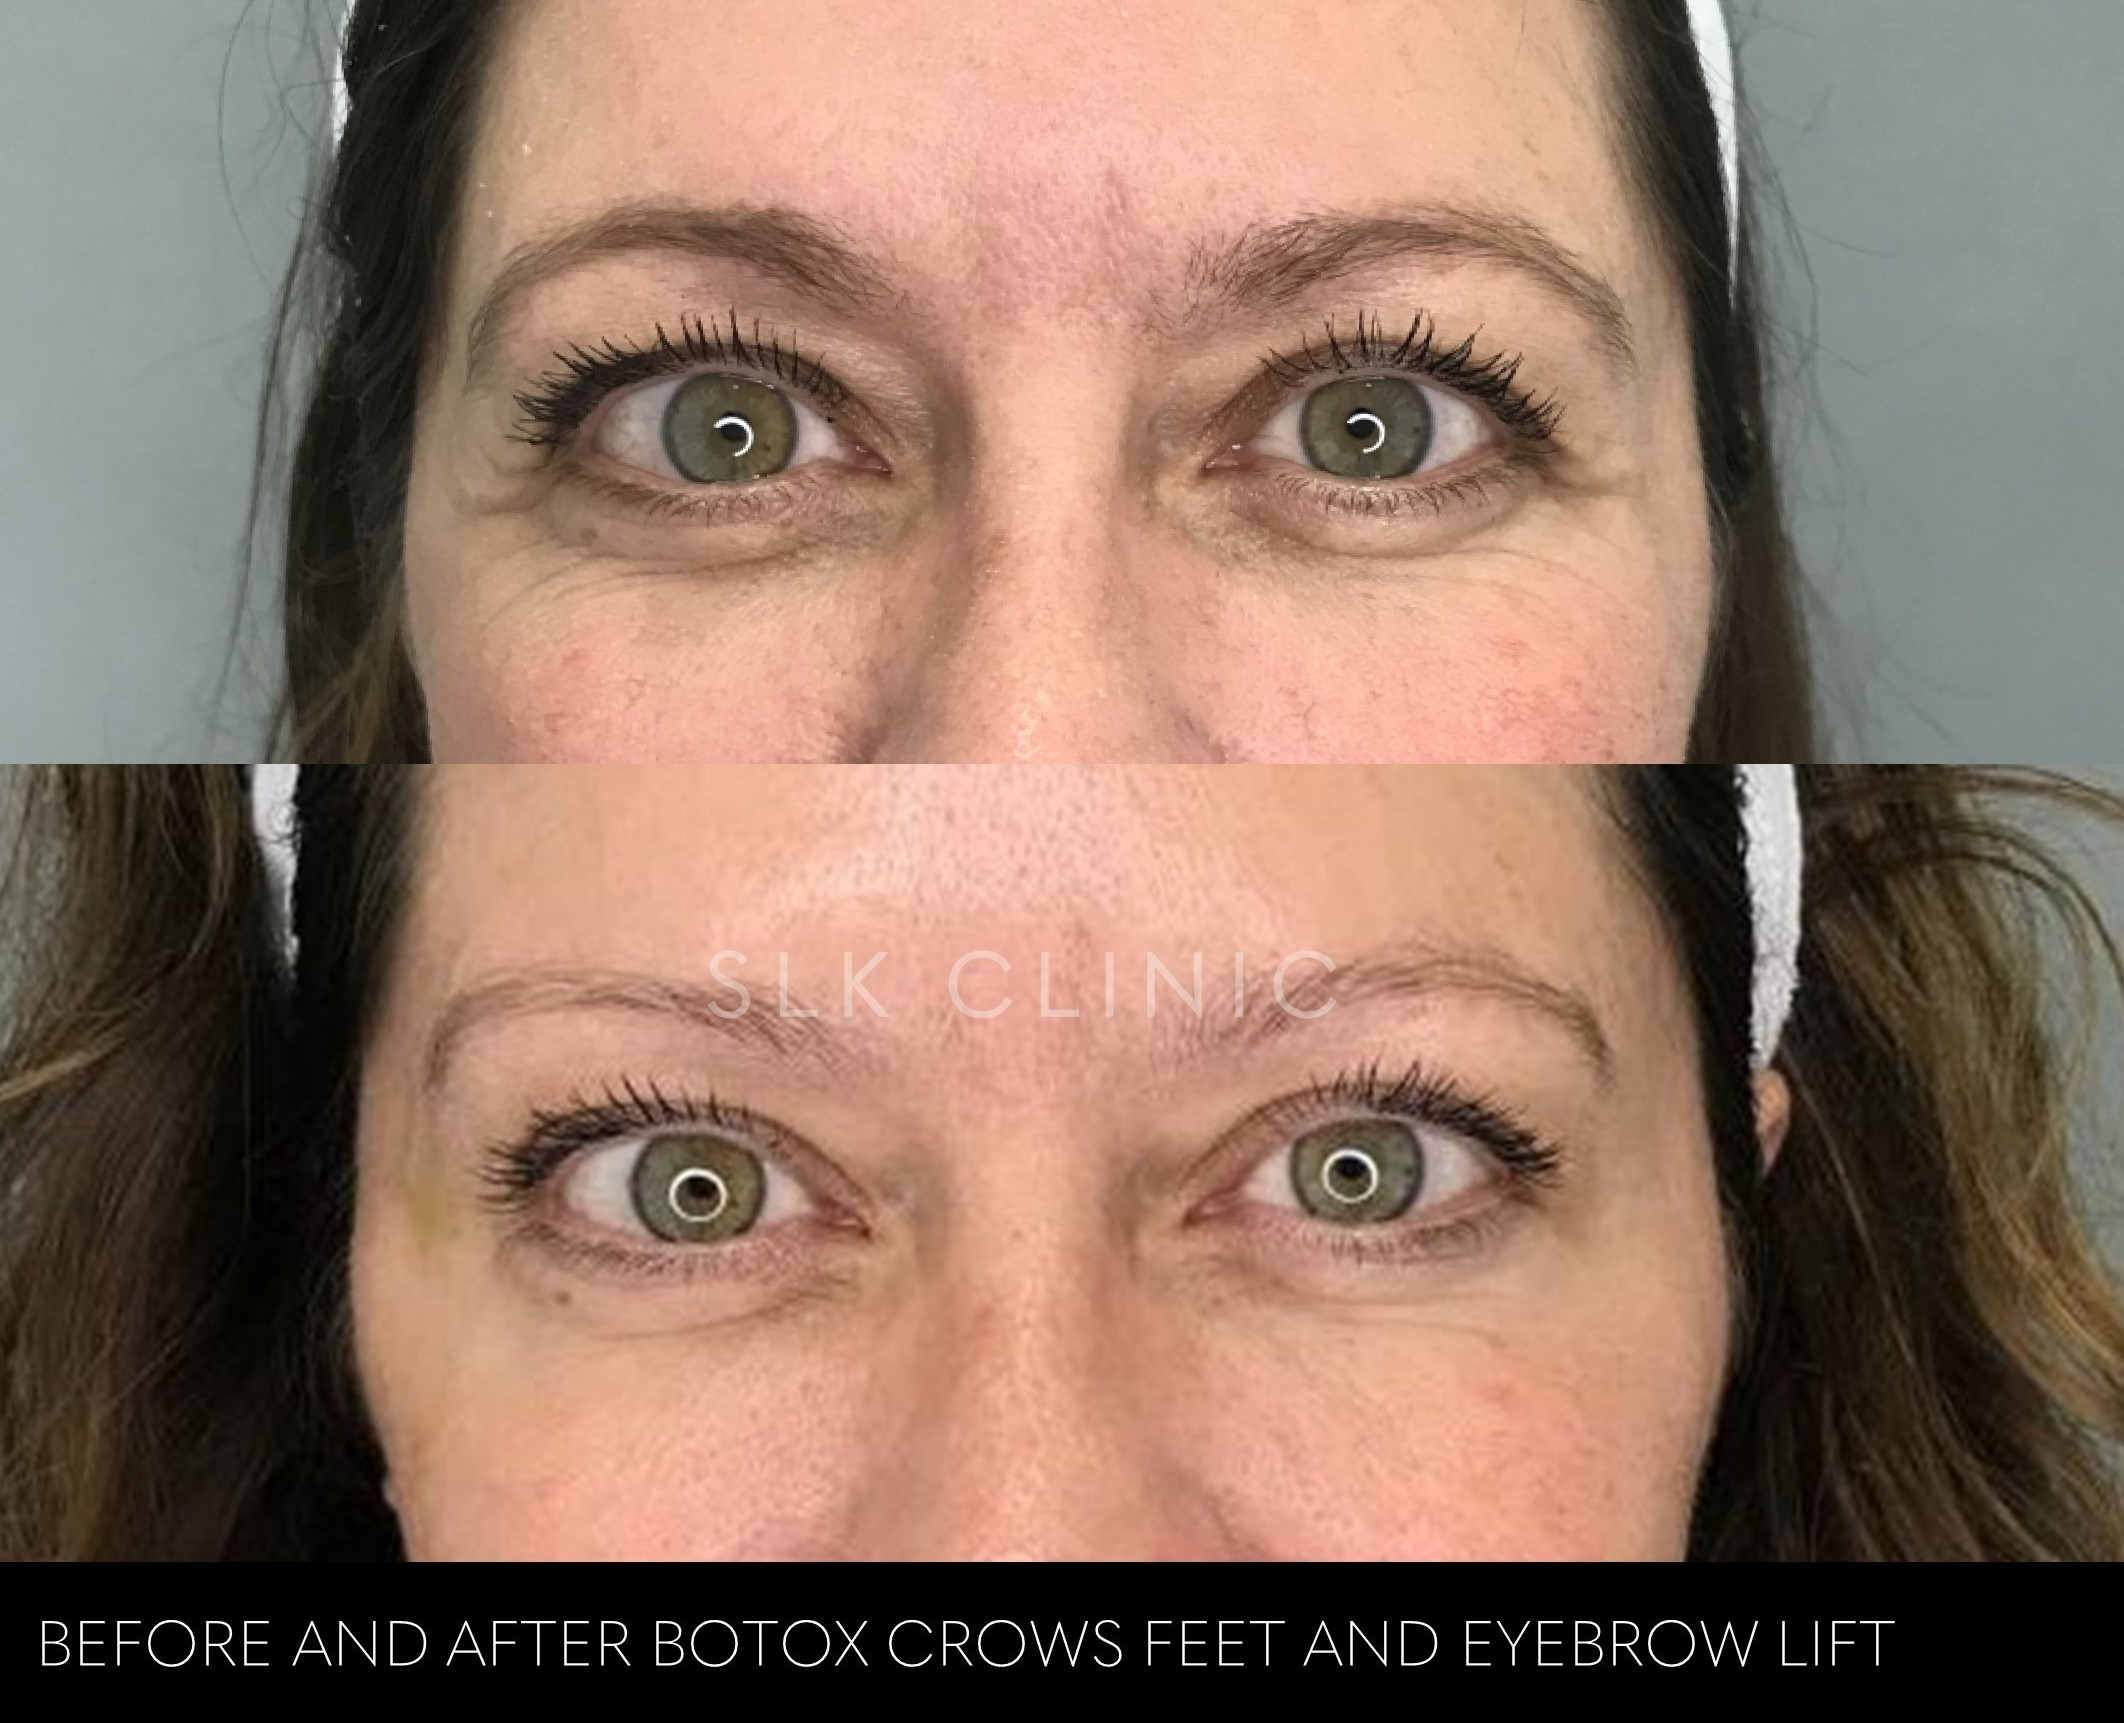 before and after photo of botox for crows feet and eyebrow lift